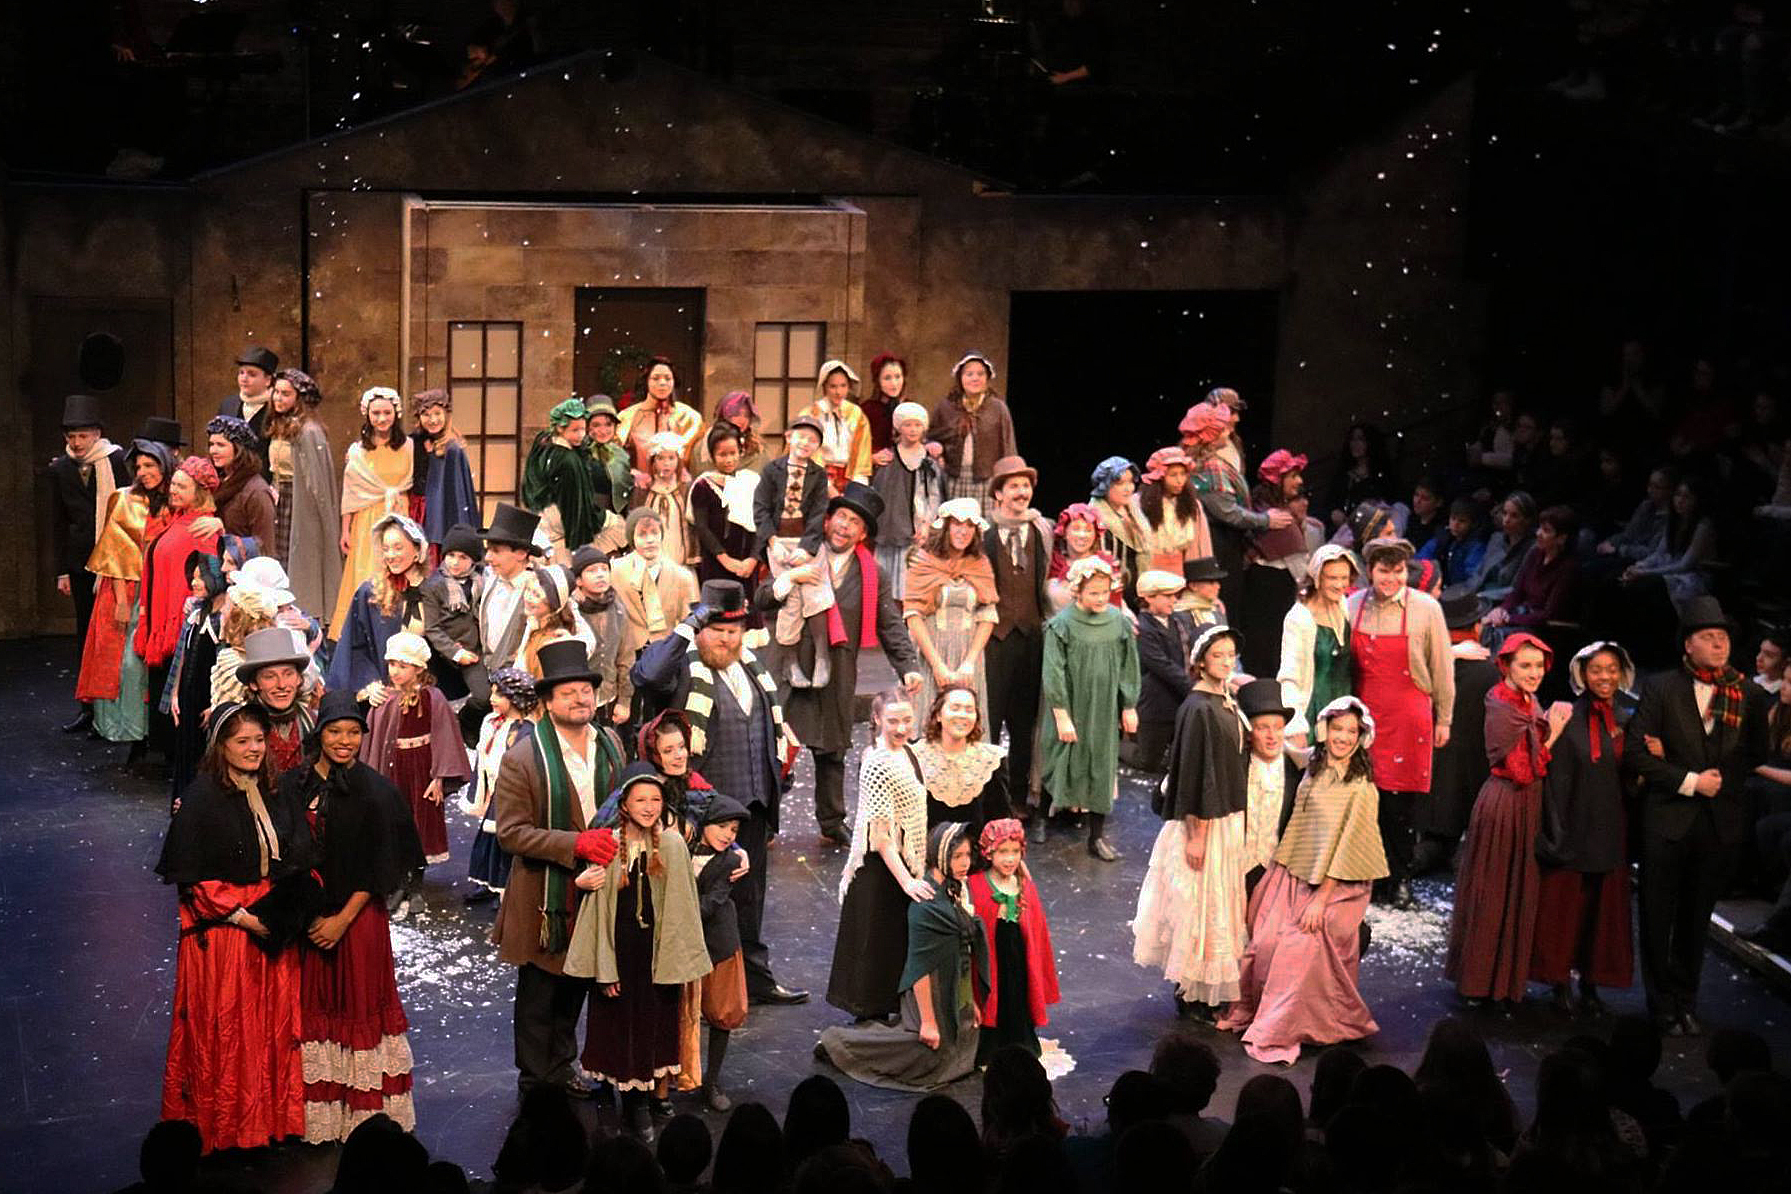 A Lyrical Christmas Carol at the New Hazlett Theater